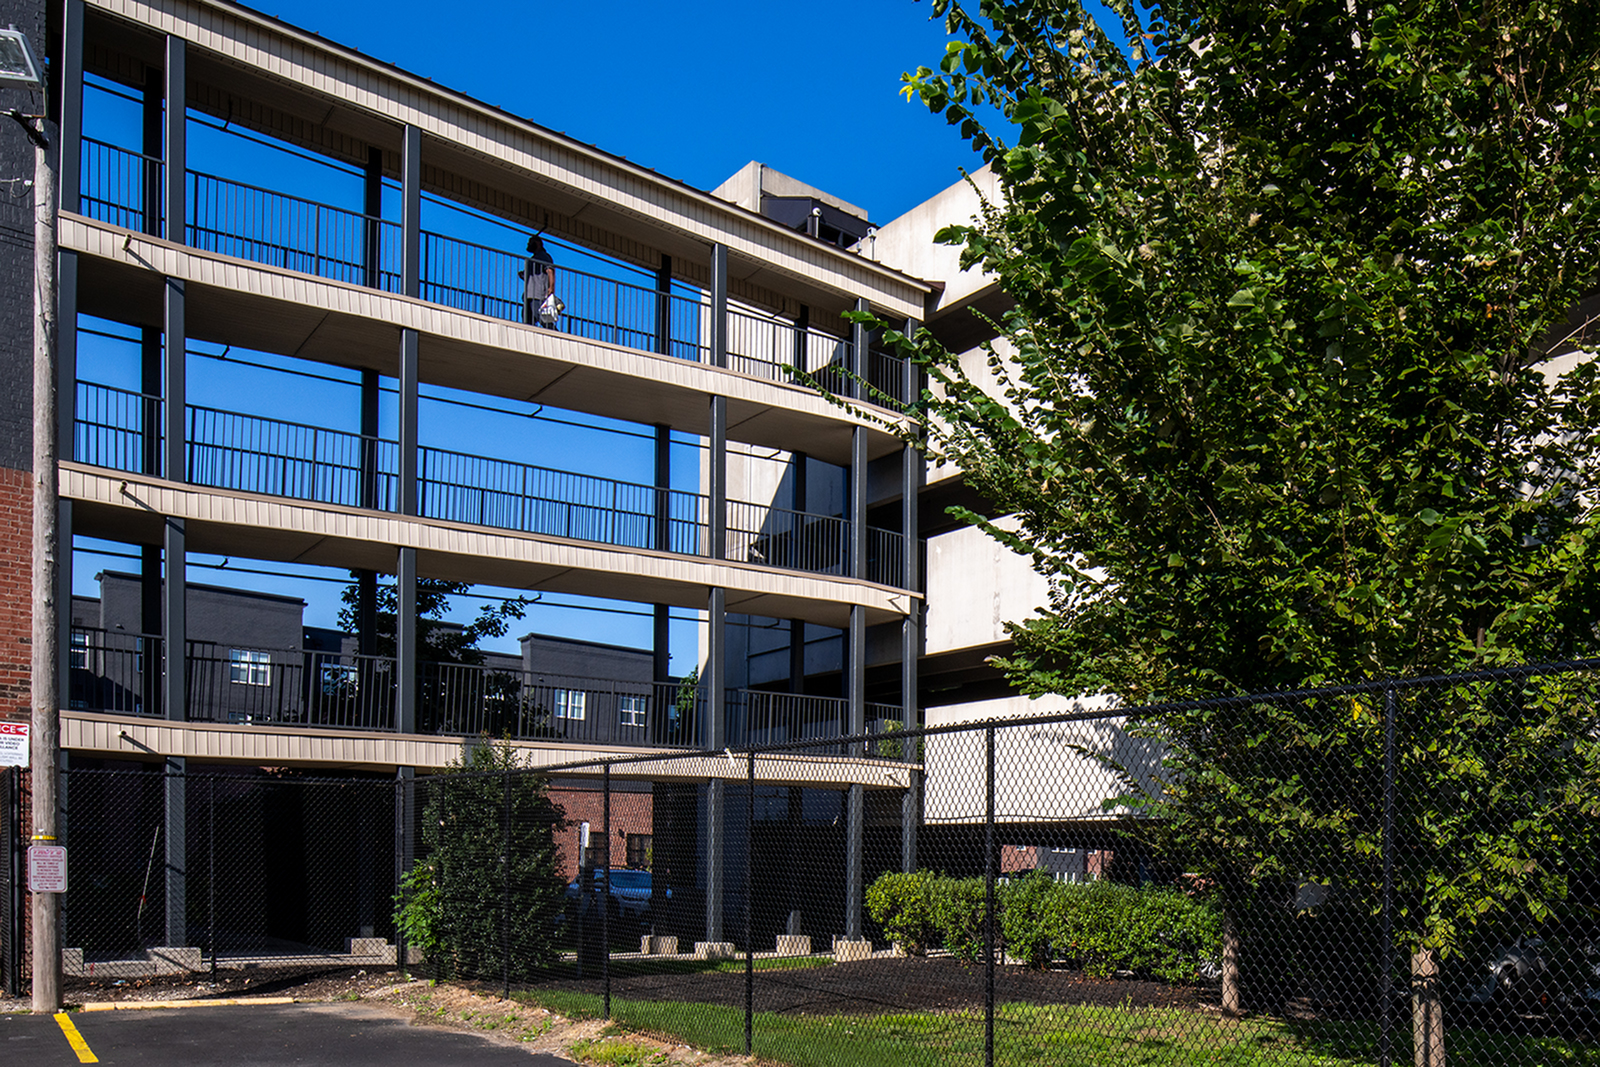 Private Parking Garage at Trifecta Apartments | Student Apartments In Louisville, KY.